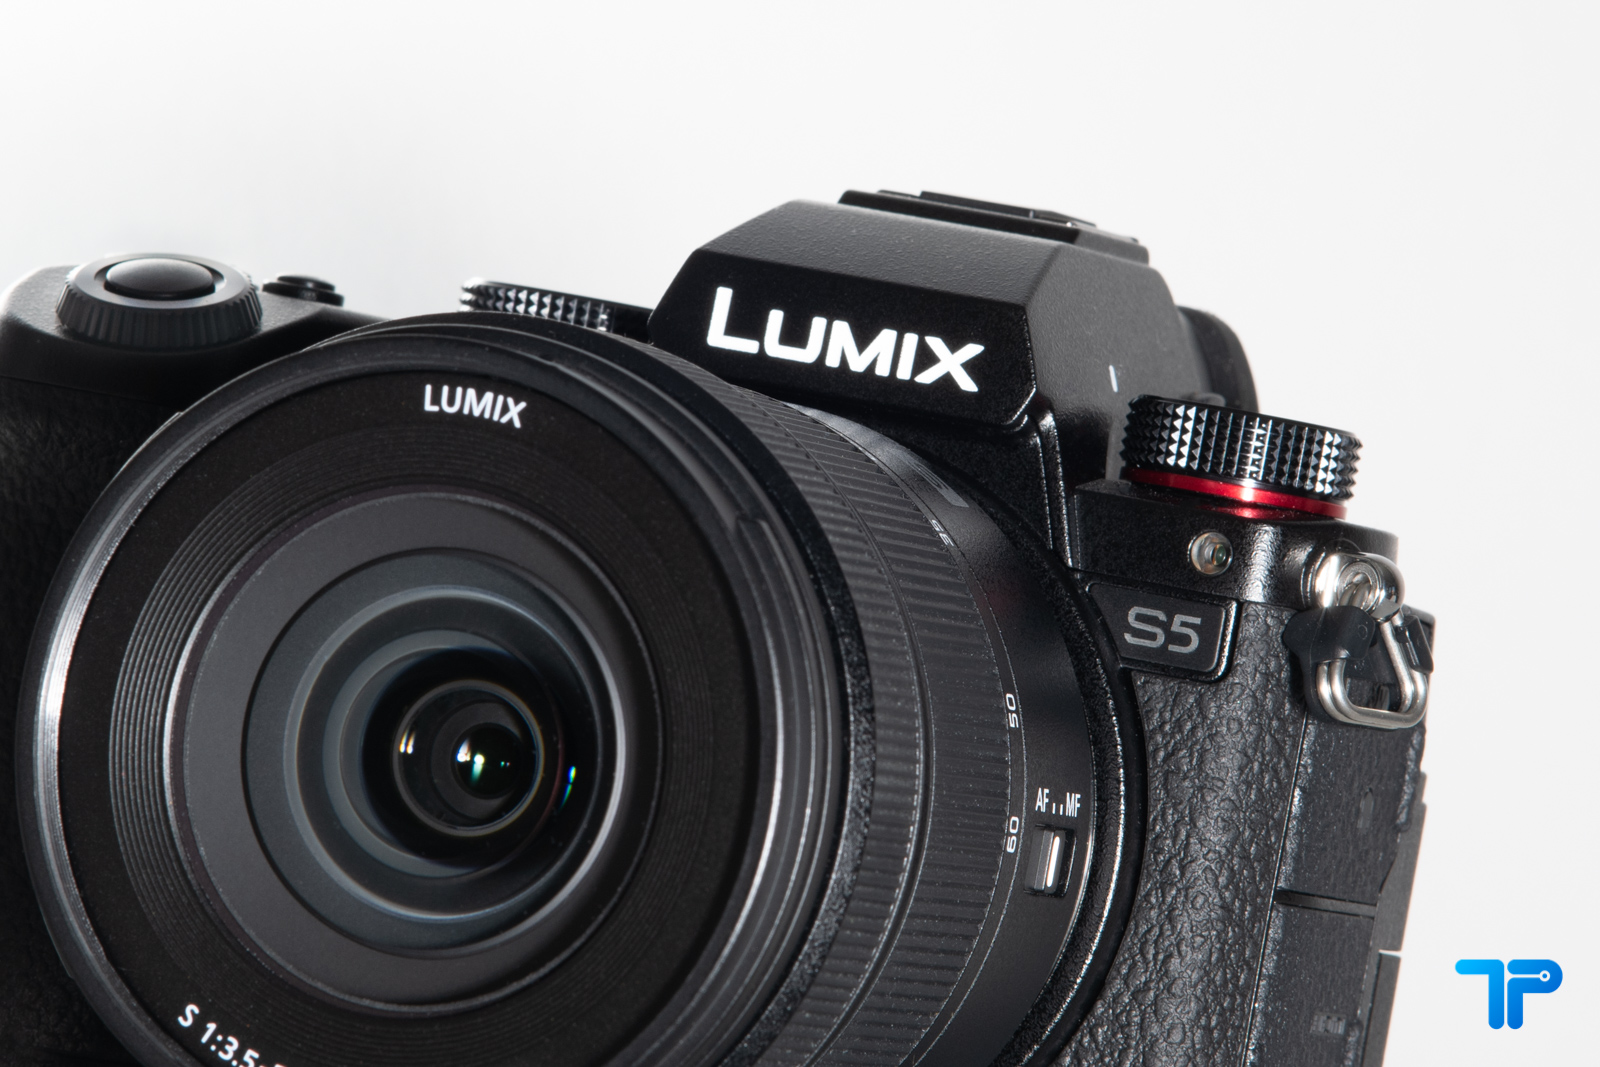 Lumix S5: altro che entry-level thumbnail